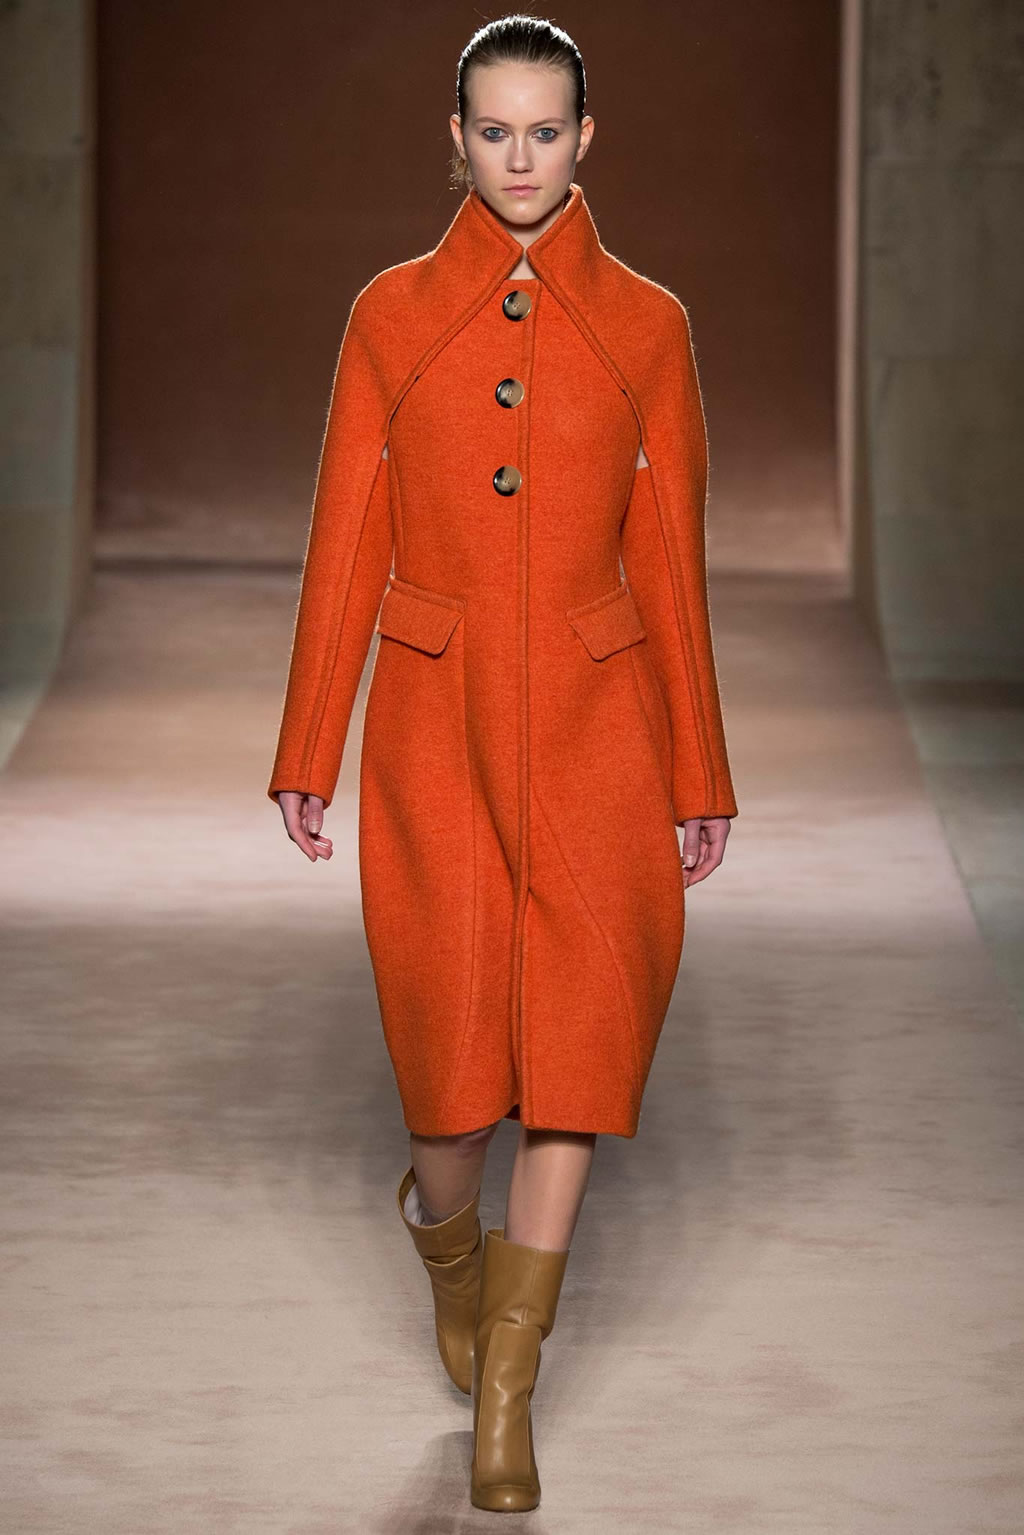 Victoria Beckham Amps Up The Sex Appeal In Her New Fall